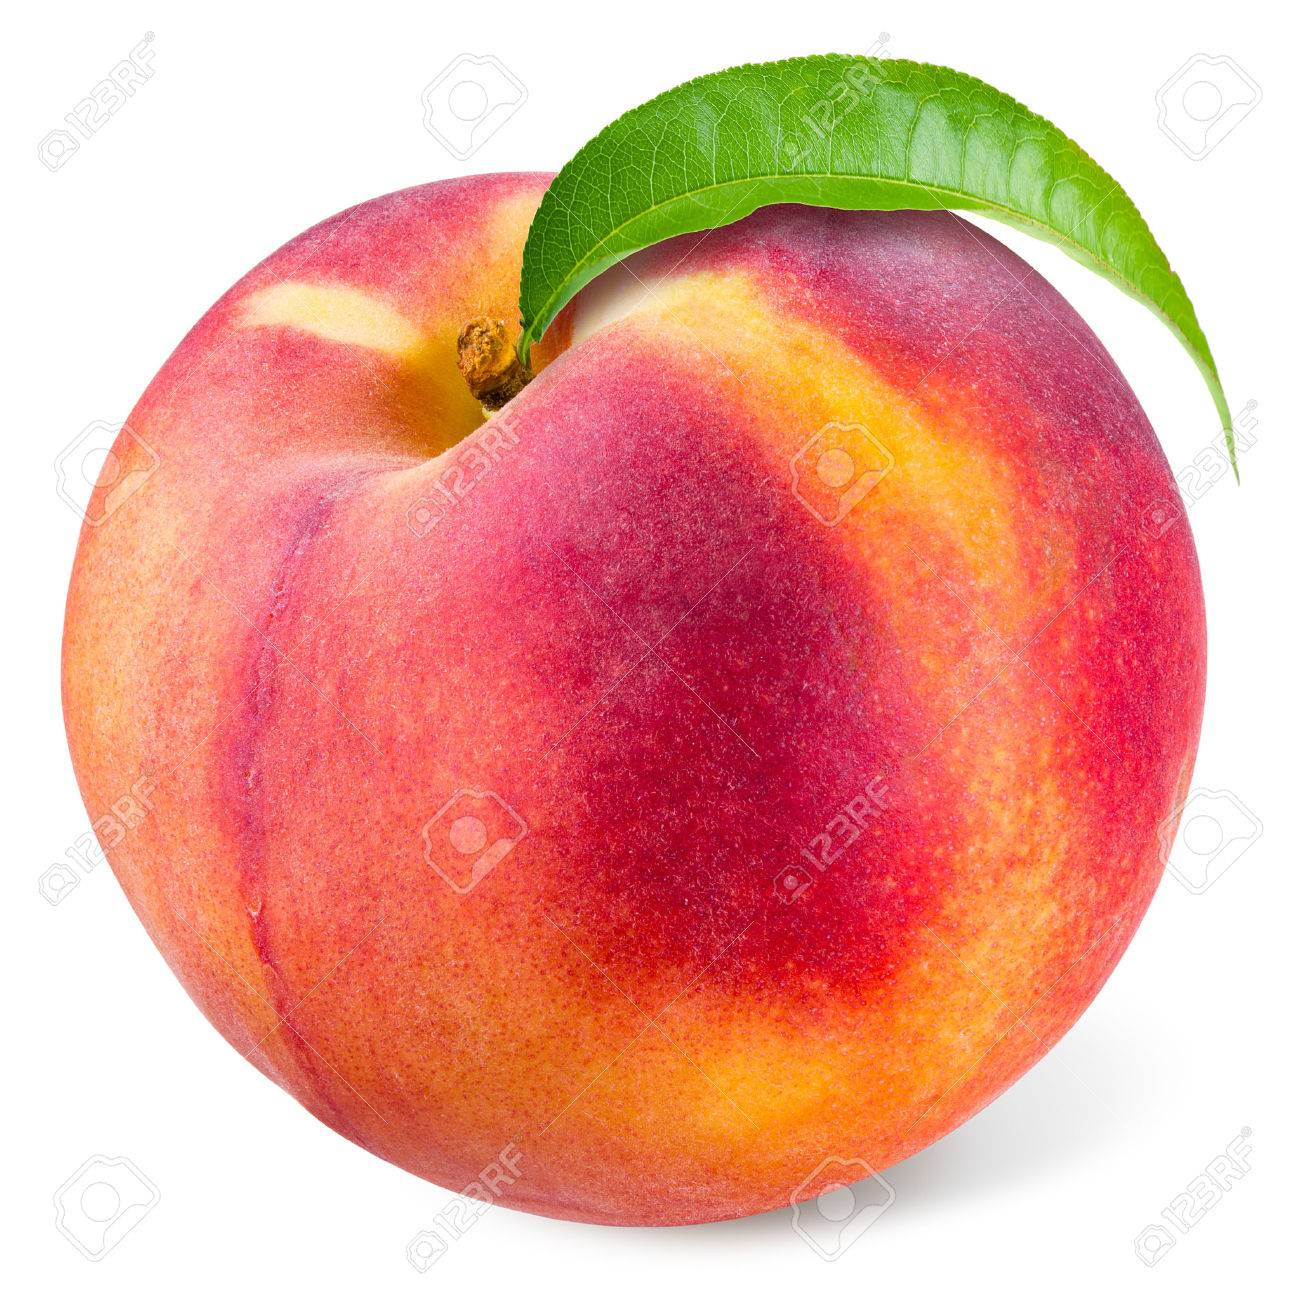 Peach with leaf isolated on white - 54837747